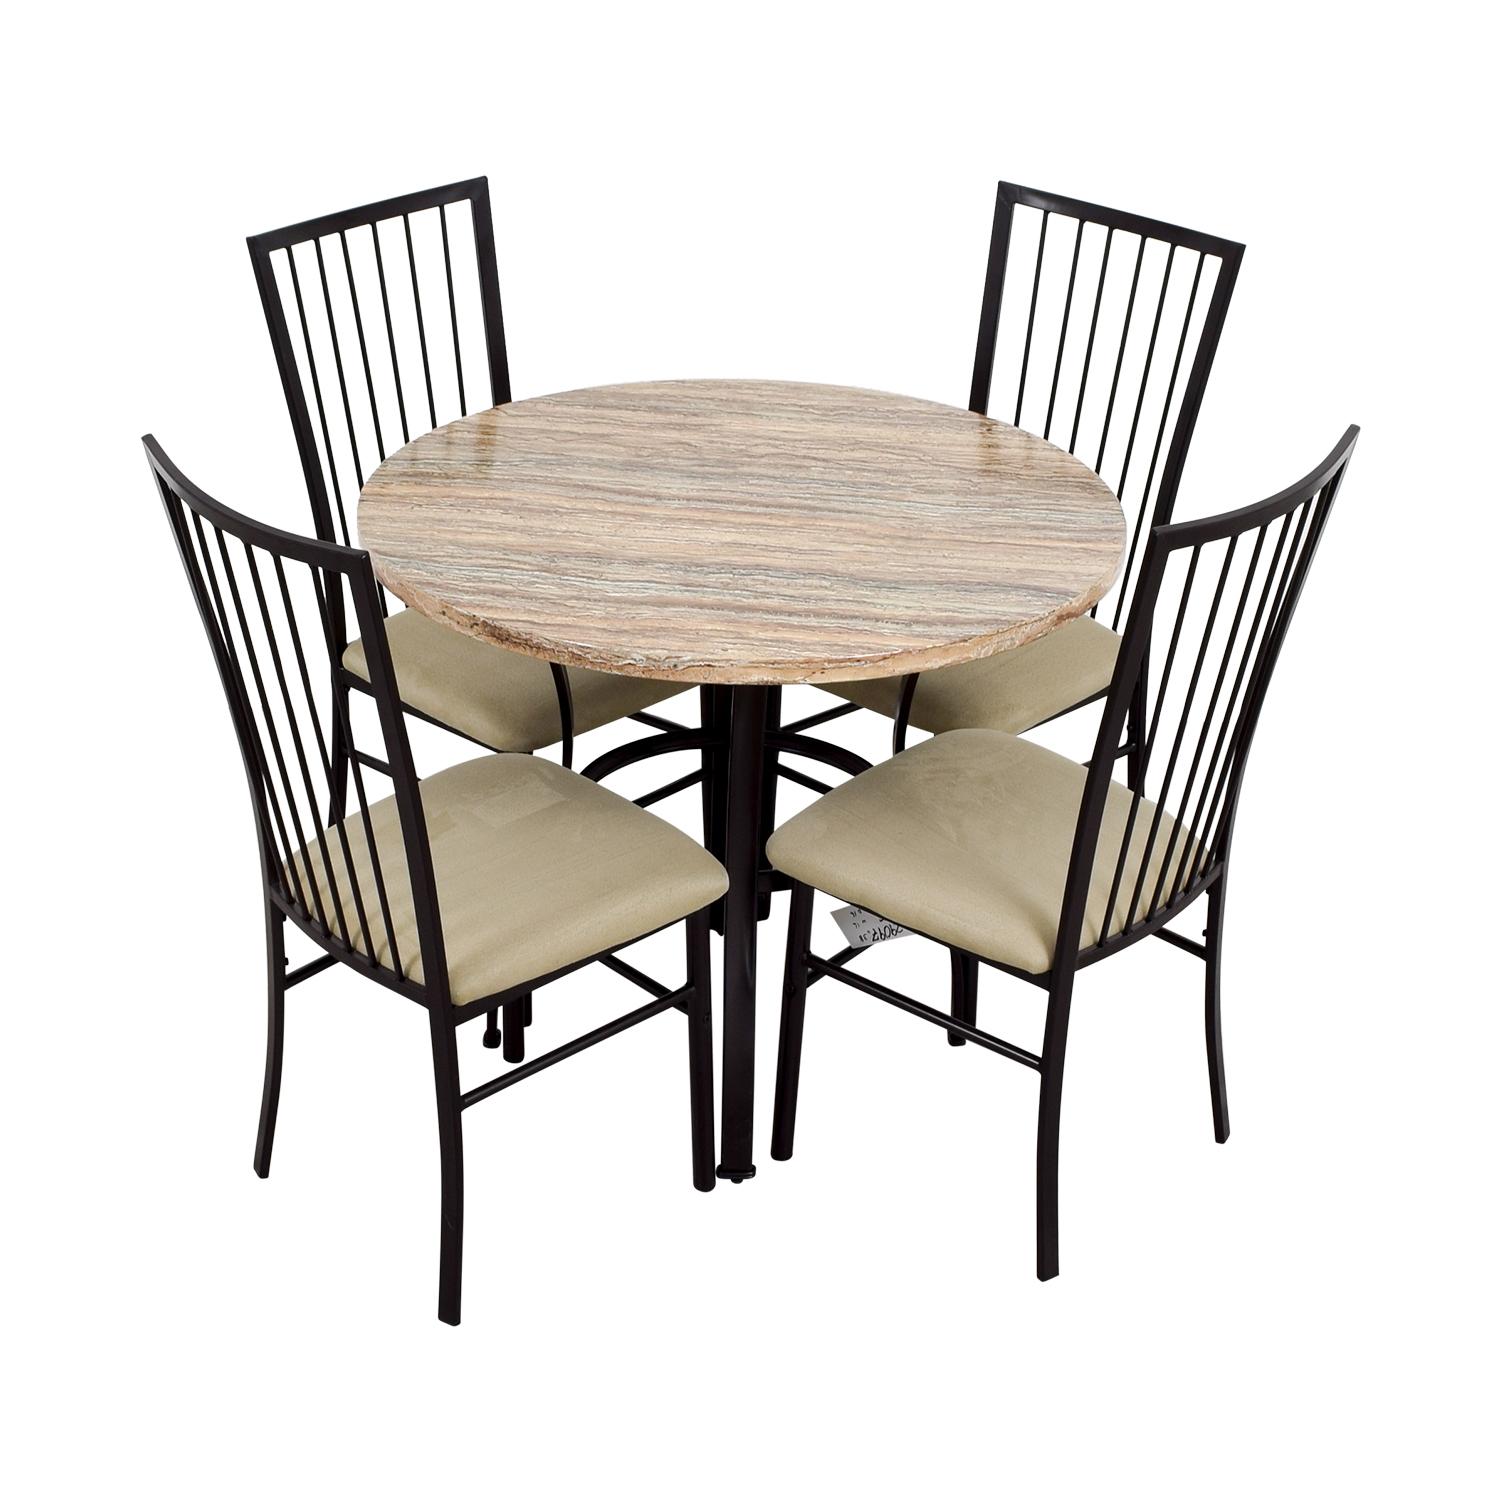 Wayfair Wayfair Stone Dining Table Set second hand